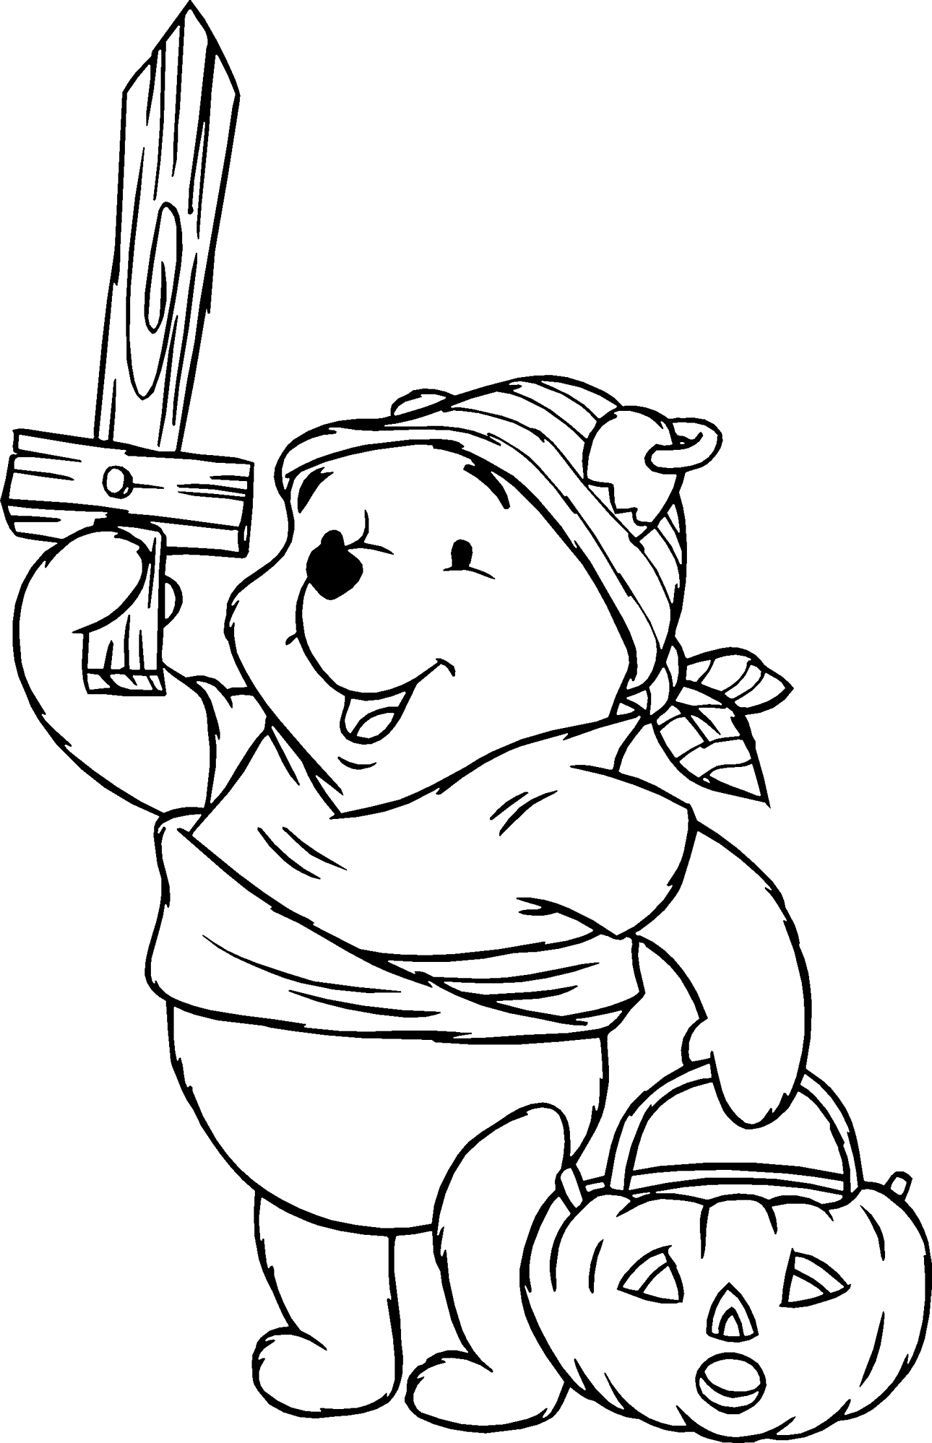 17 Free Printable Halloween Coloring Pages for Kids - Print Them